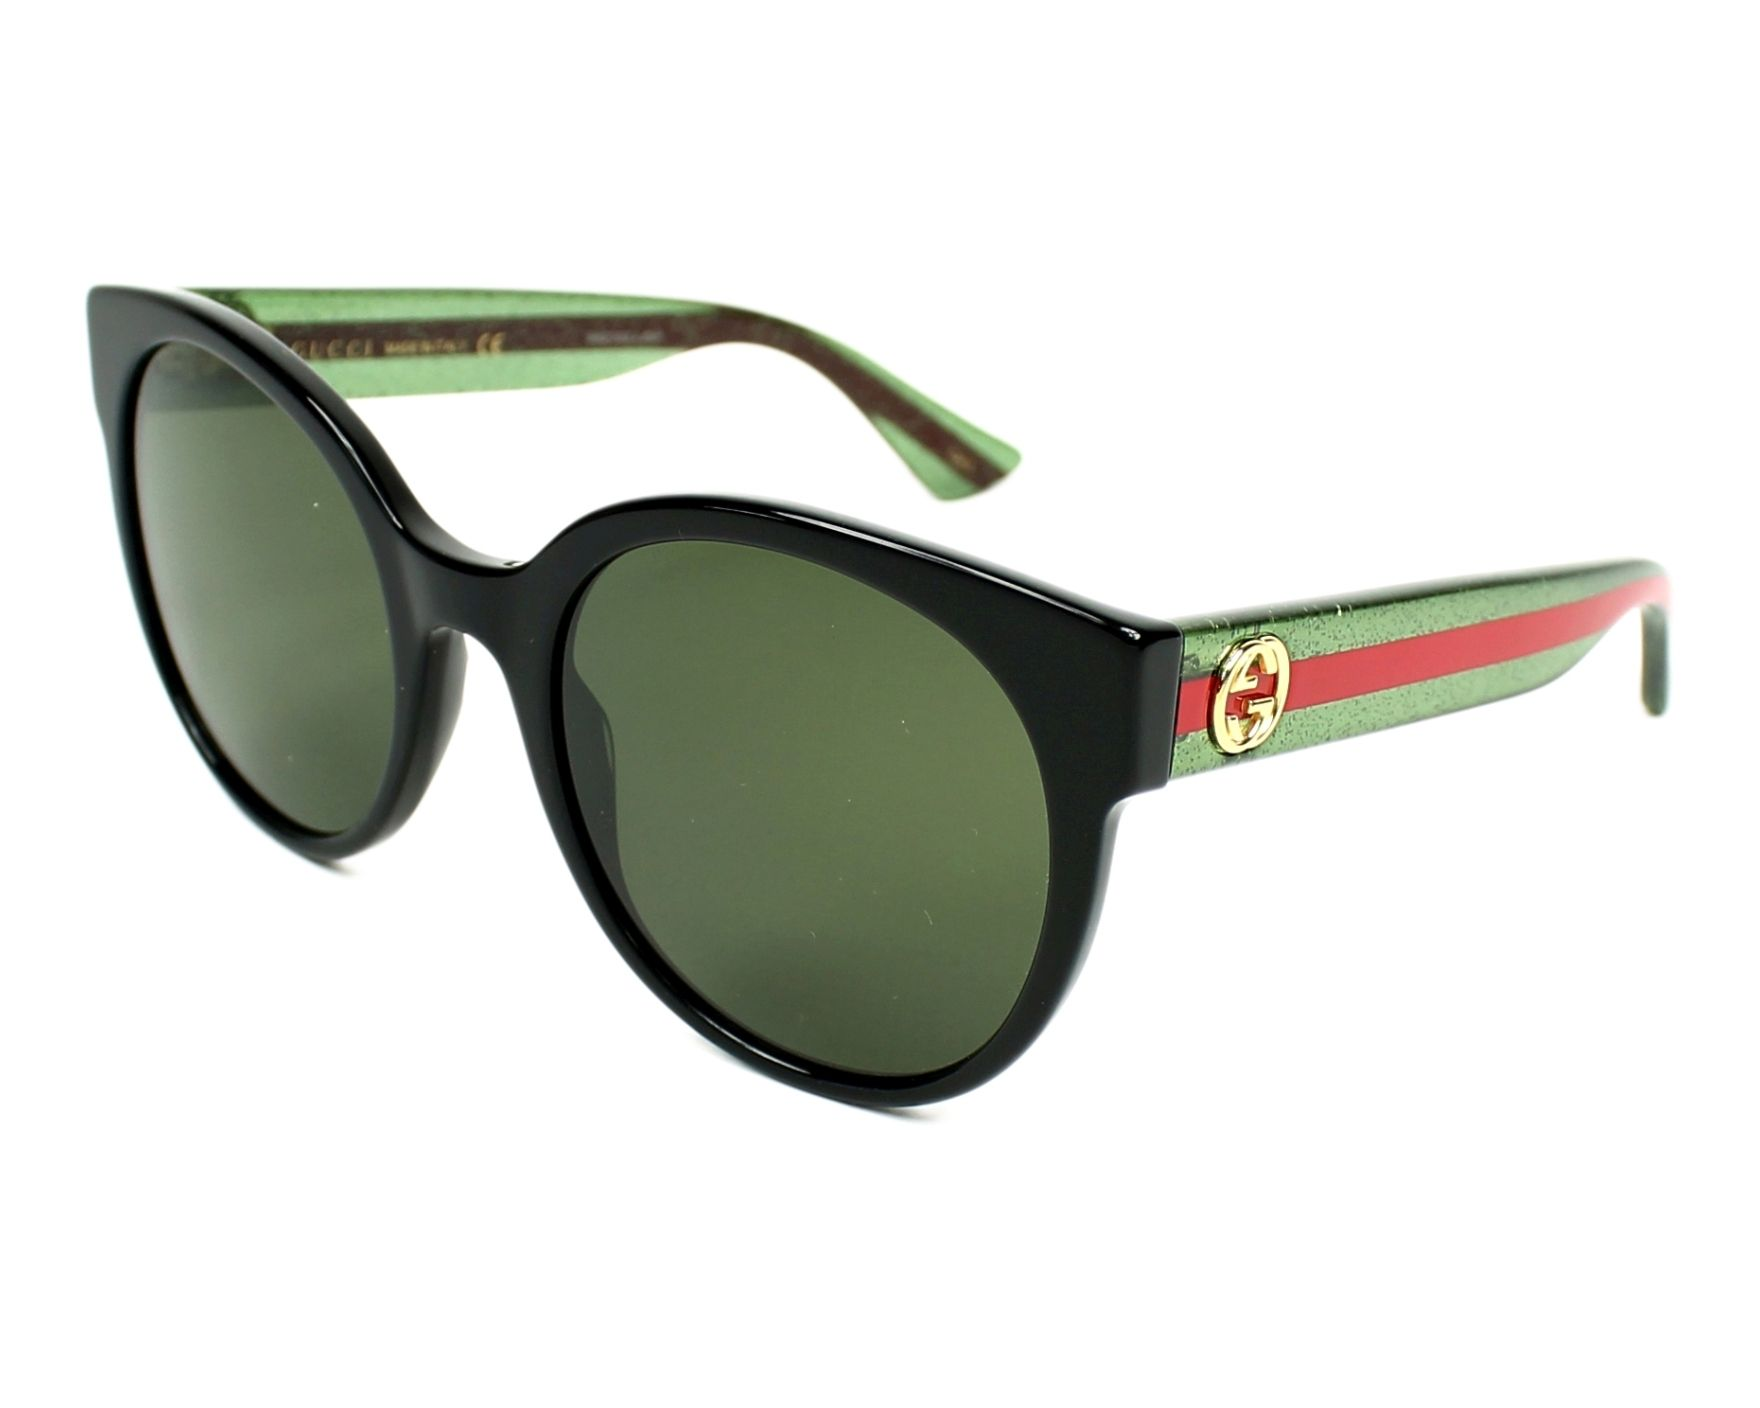 Gucci - Buy Gucci sunglasses online at low prices 2b0d836c27